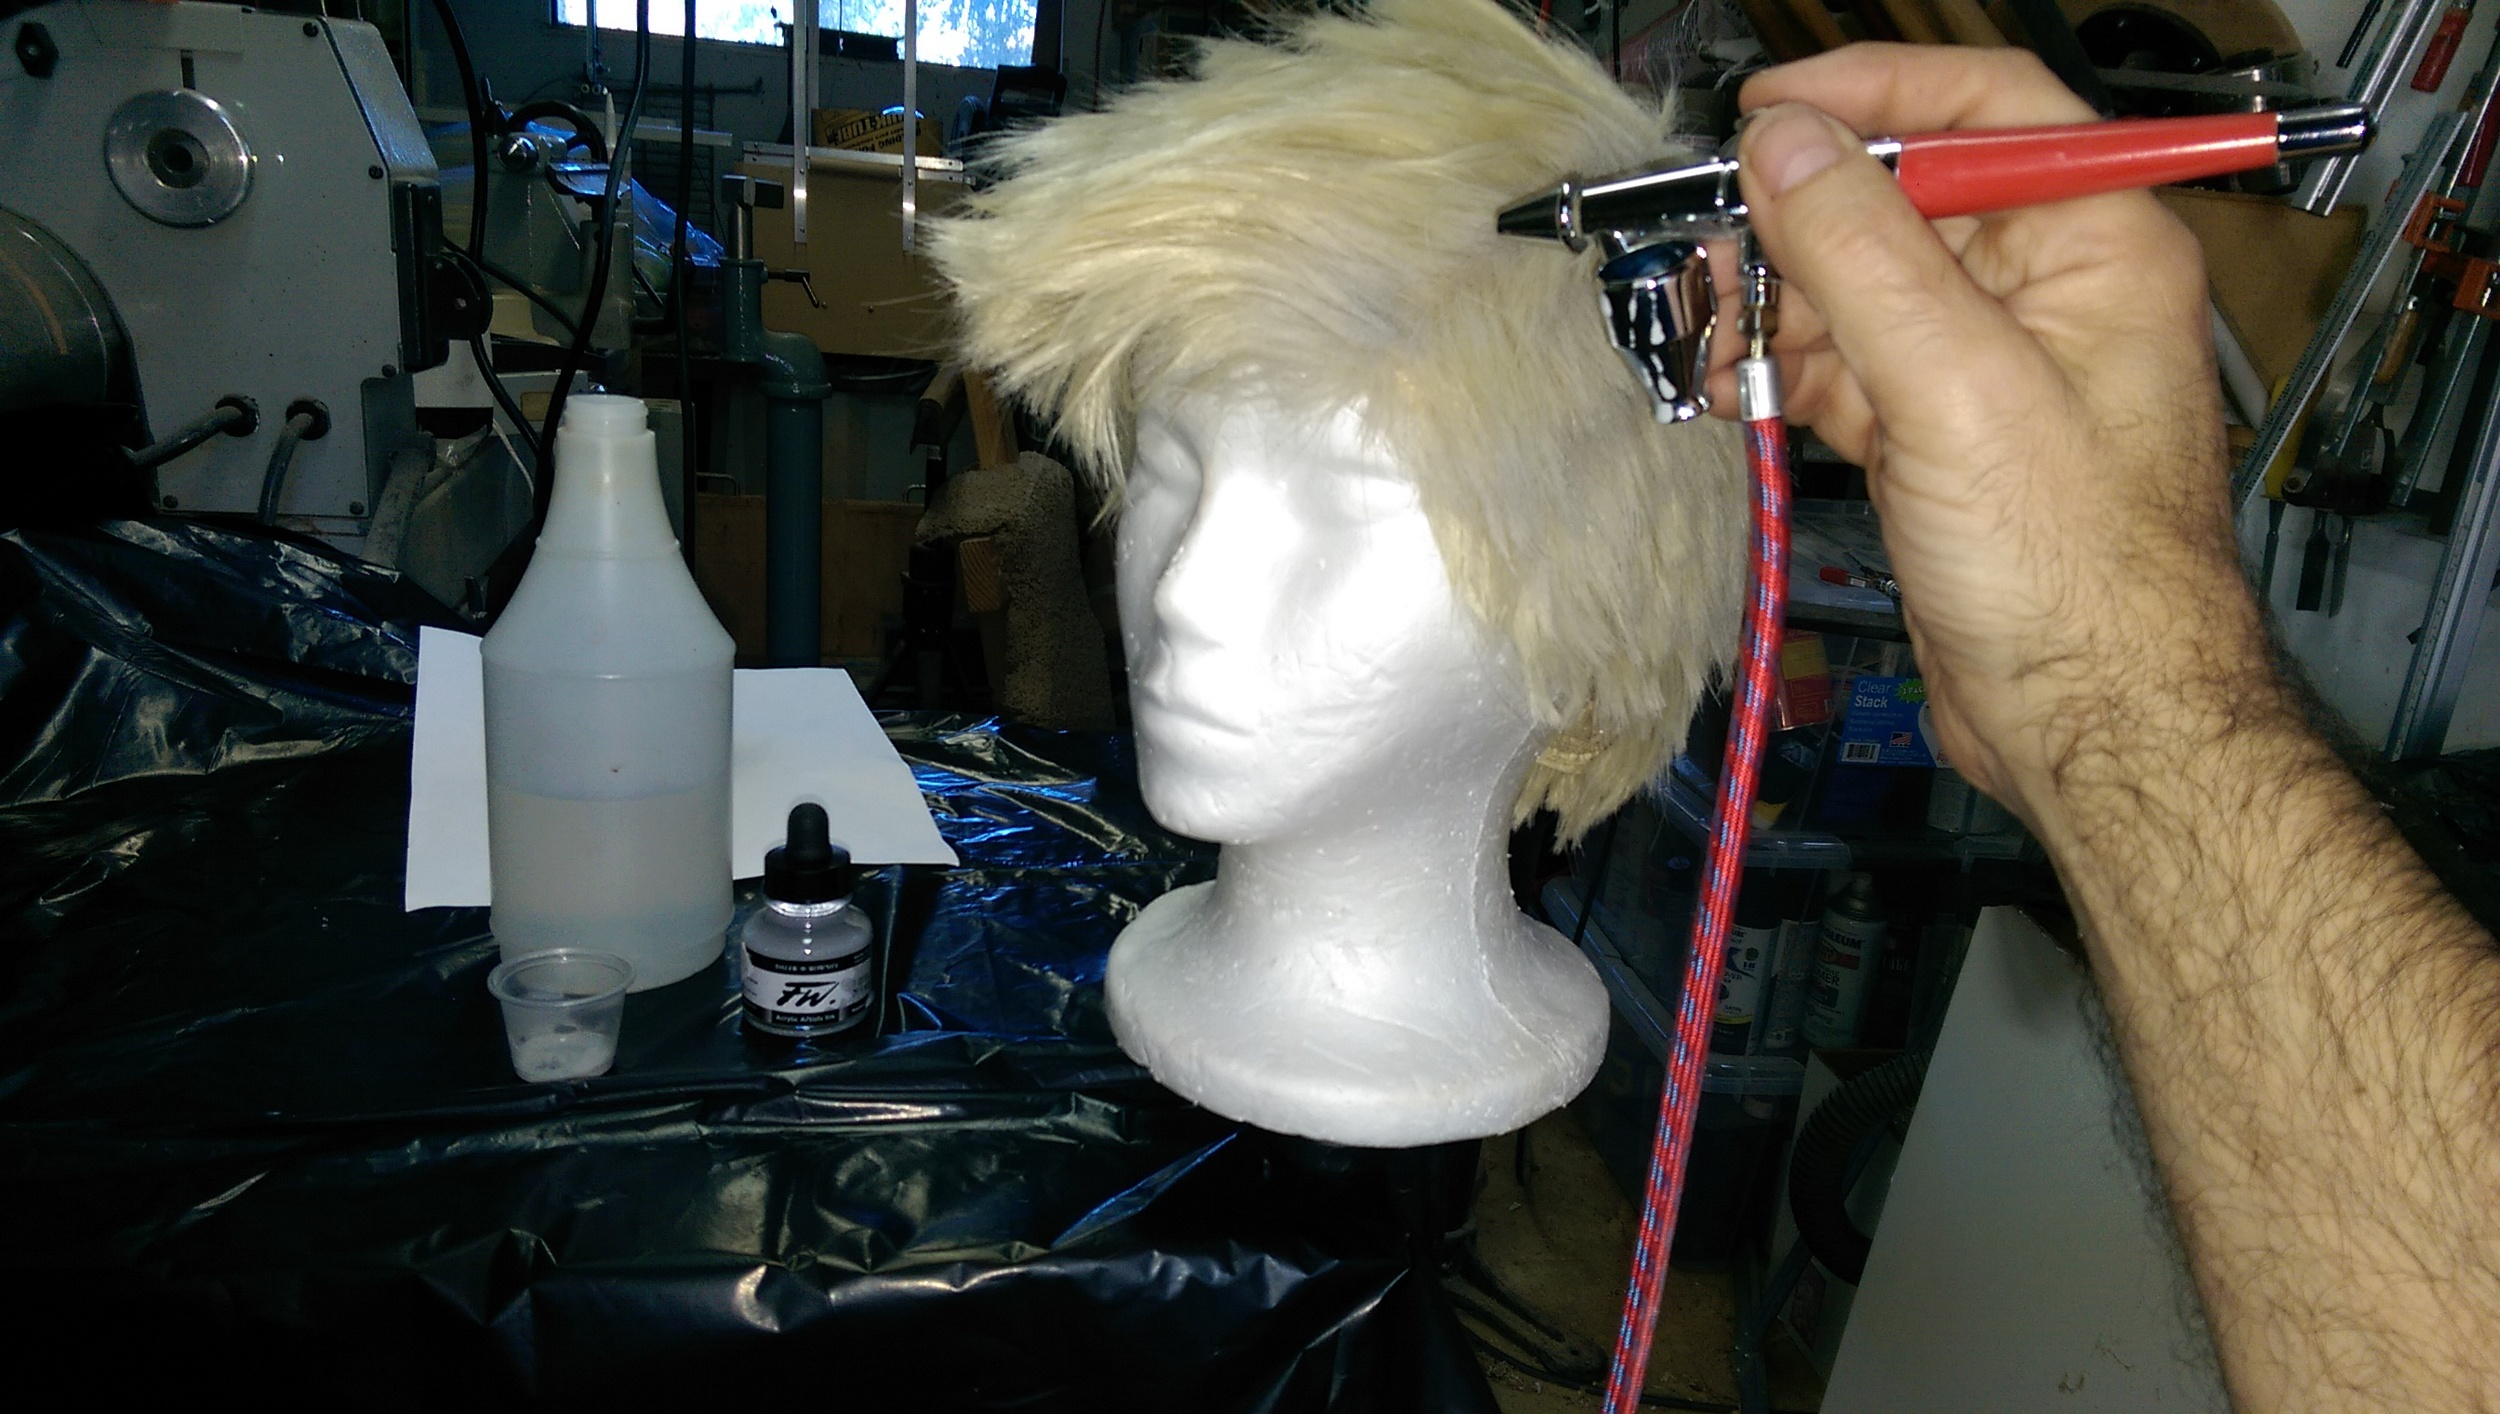 Coloring the wig with FW ink using an airbrush